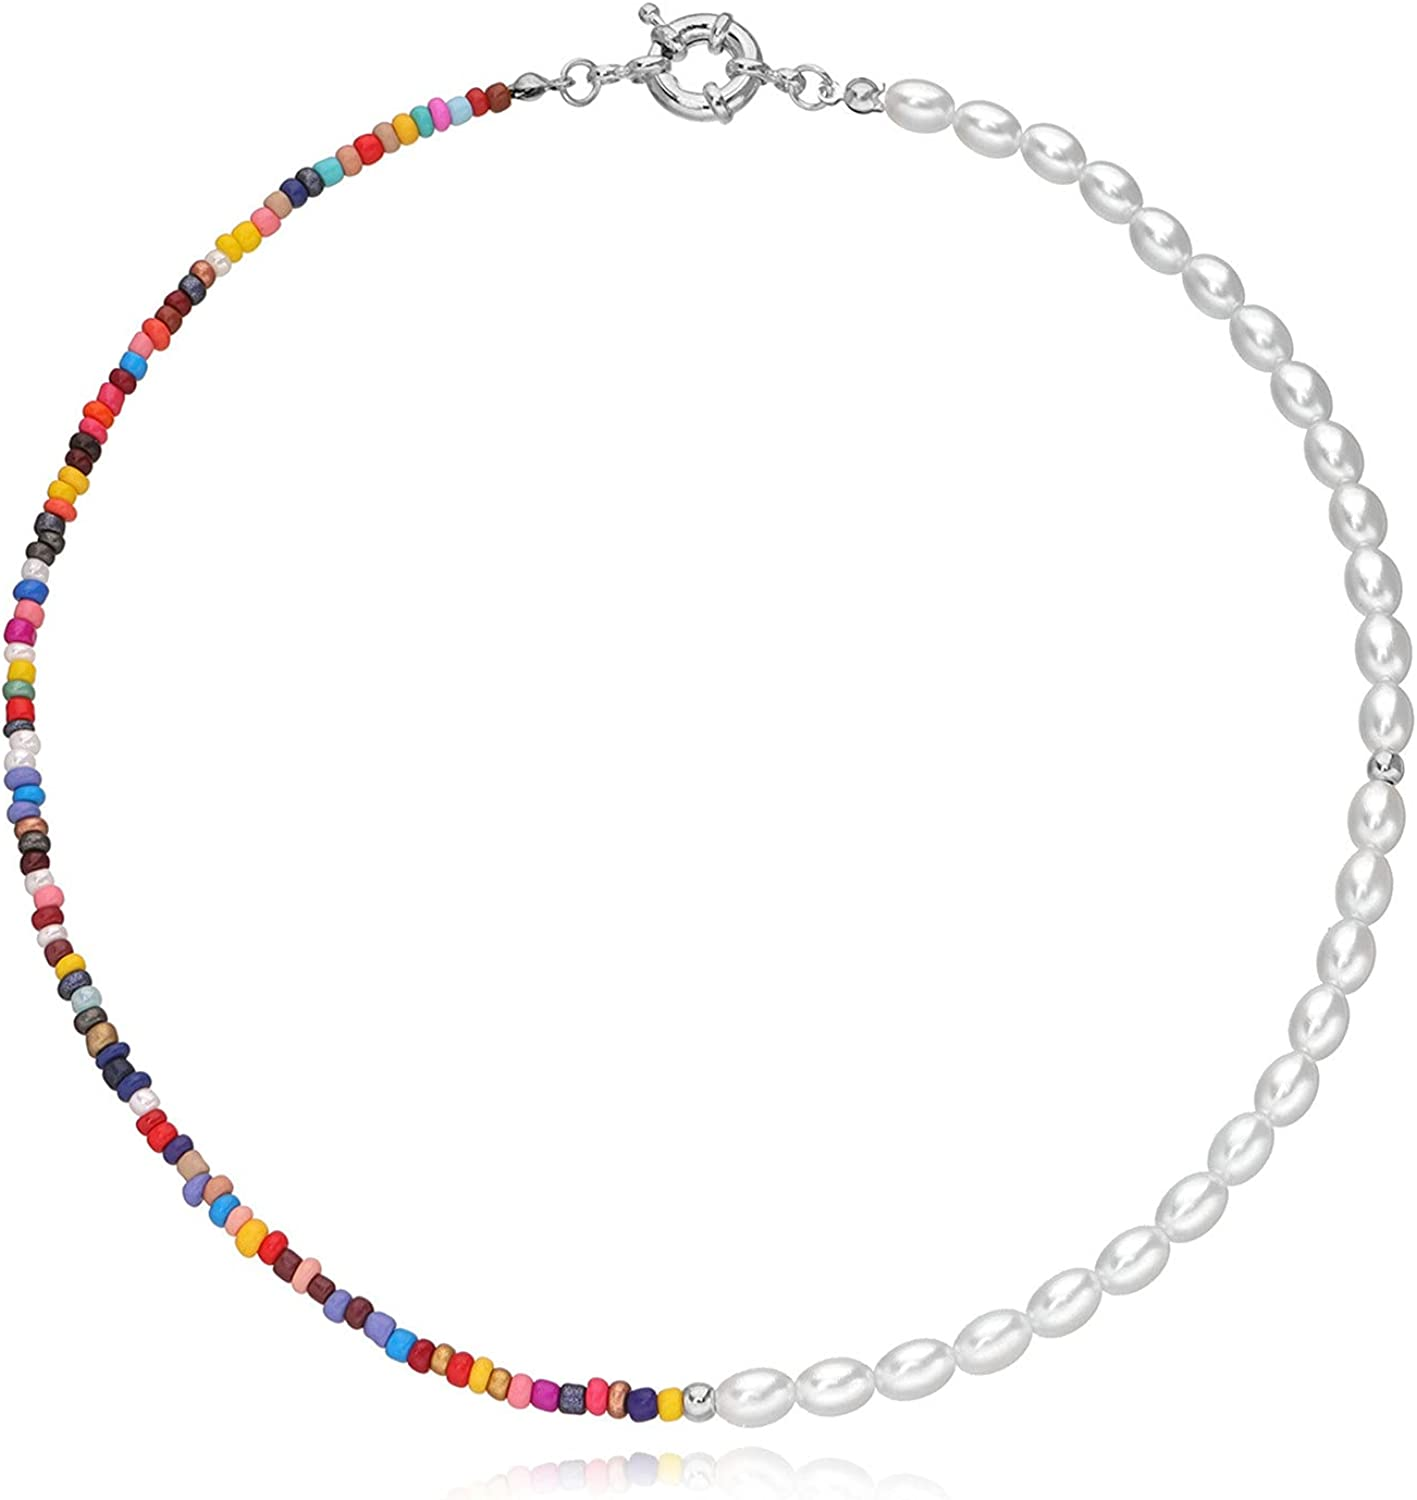 Boho Simulated Pearl Beaded Choker Summer Beach Colorful Glass Seed Beads Necklace Dainty Personalized Choker for Women Girls